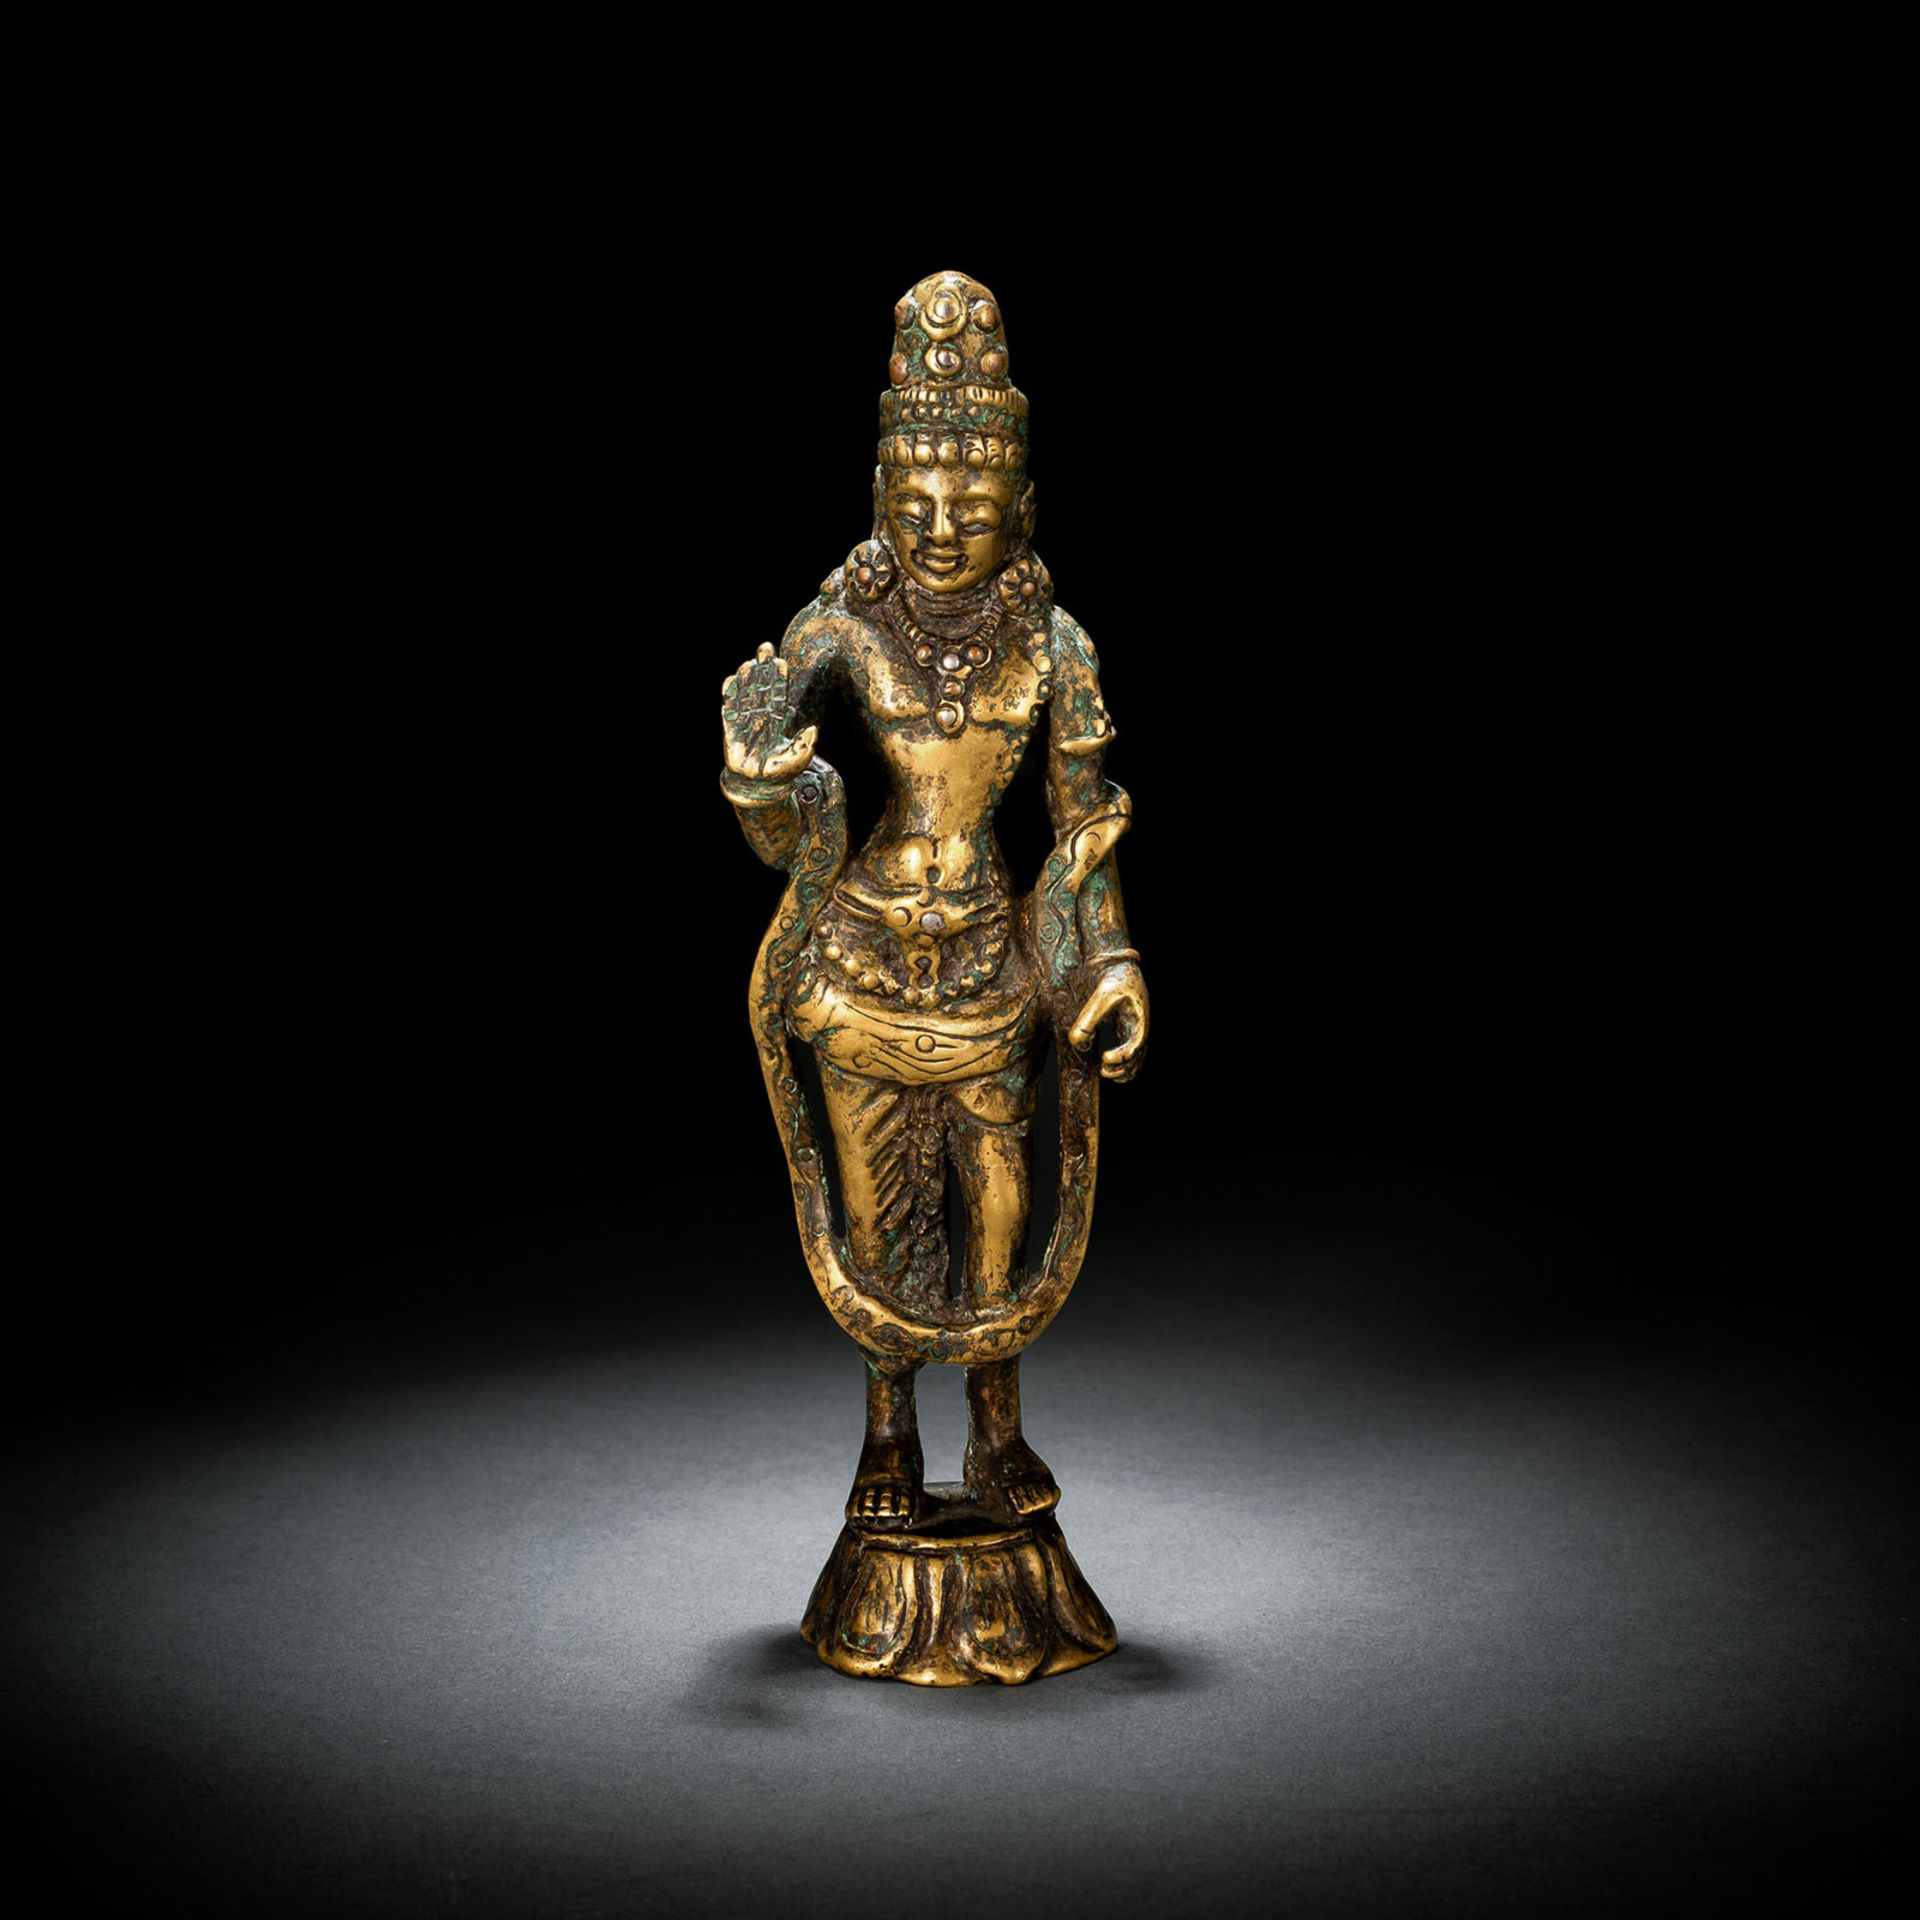 A BRONZE FIGURE OF A BODHISATTVA WITH SILVER AND COPPER INLAYS